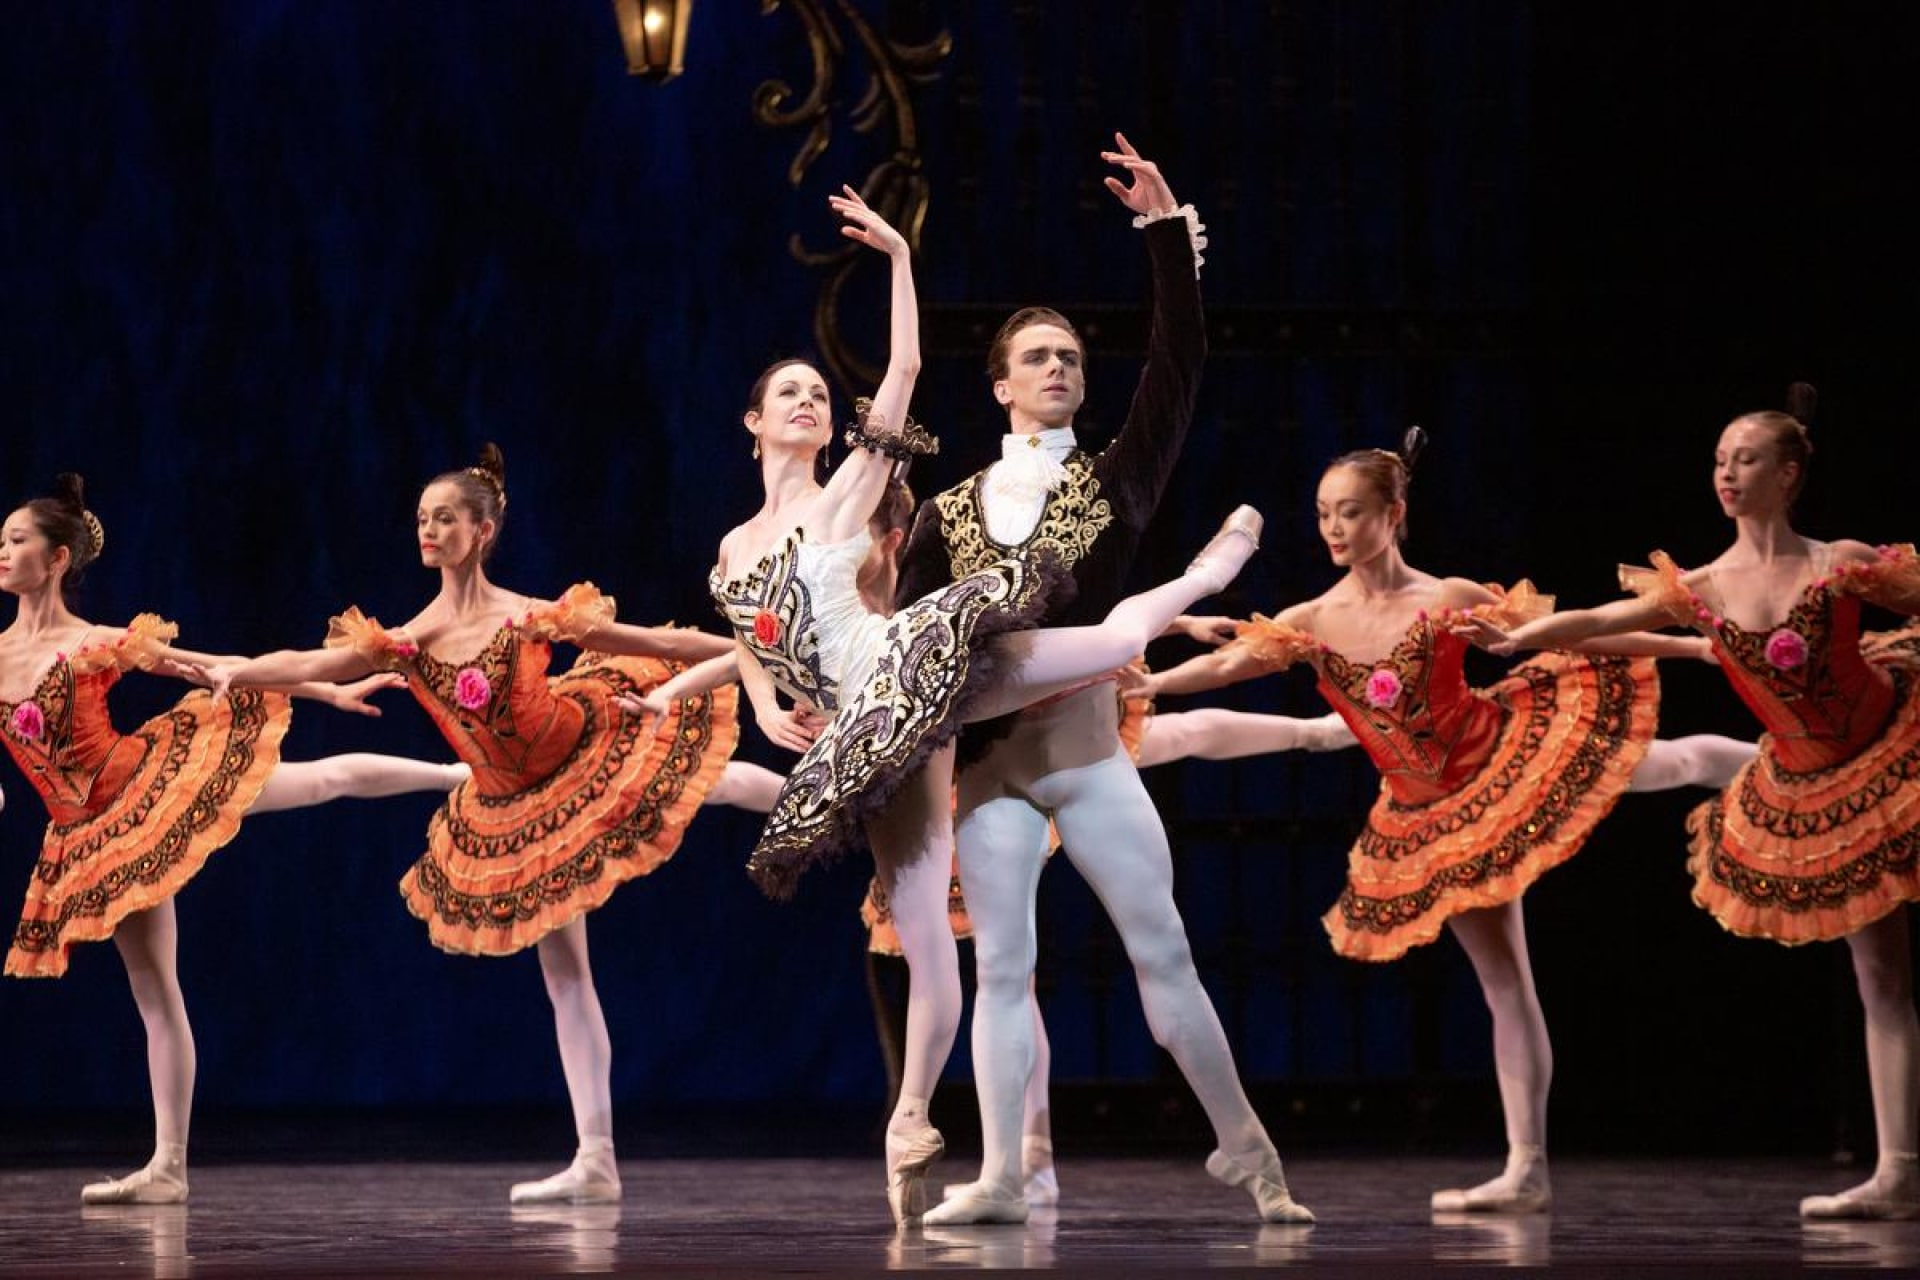 Couple black and white outfits hold pose in front of chorus of ballerinas in bright orange tutus.